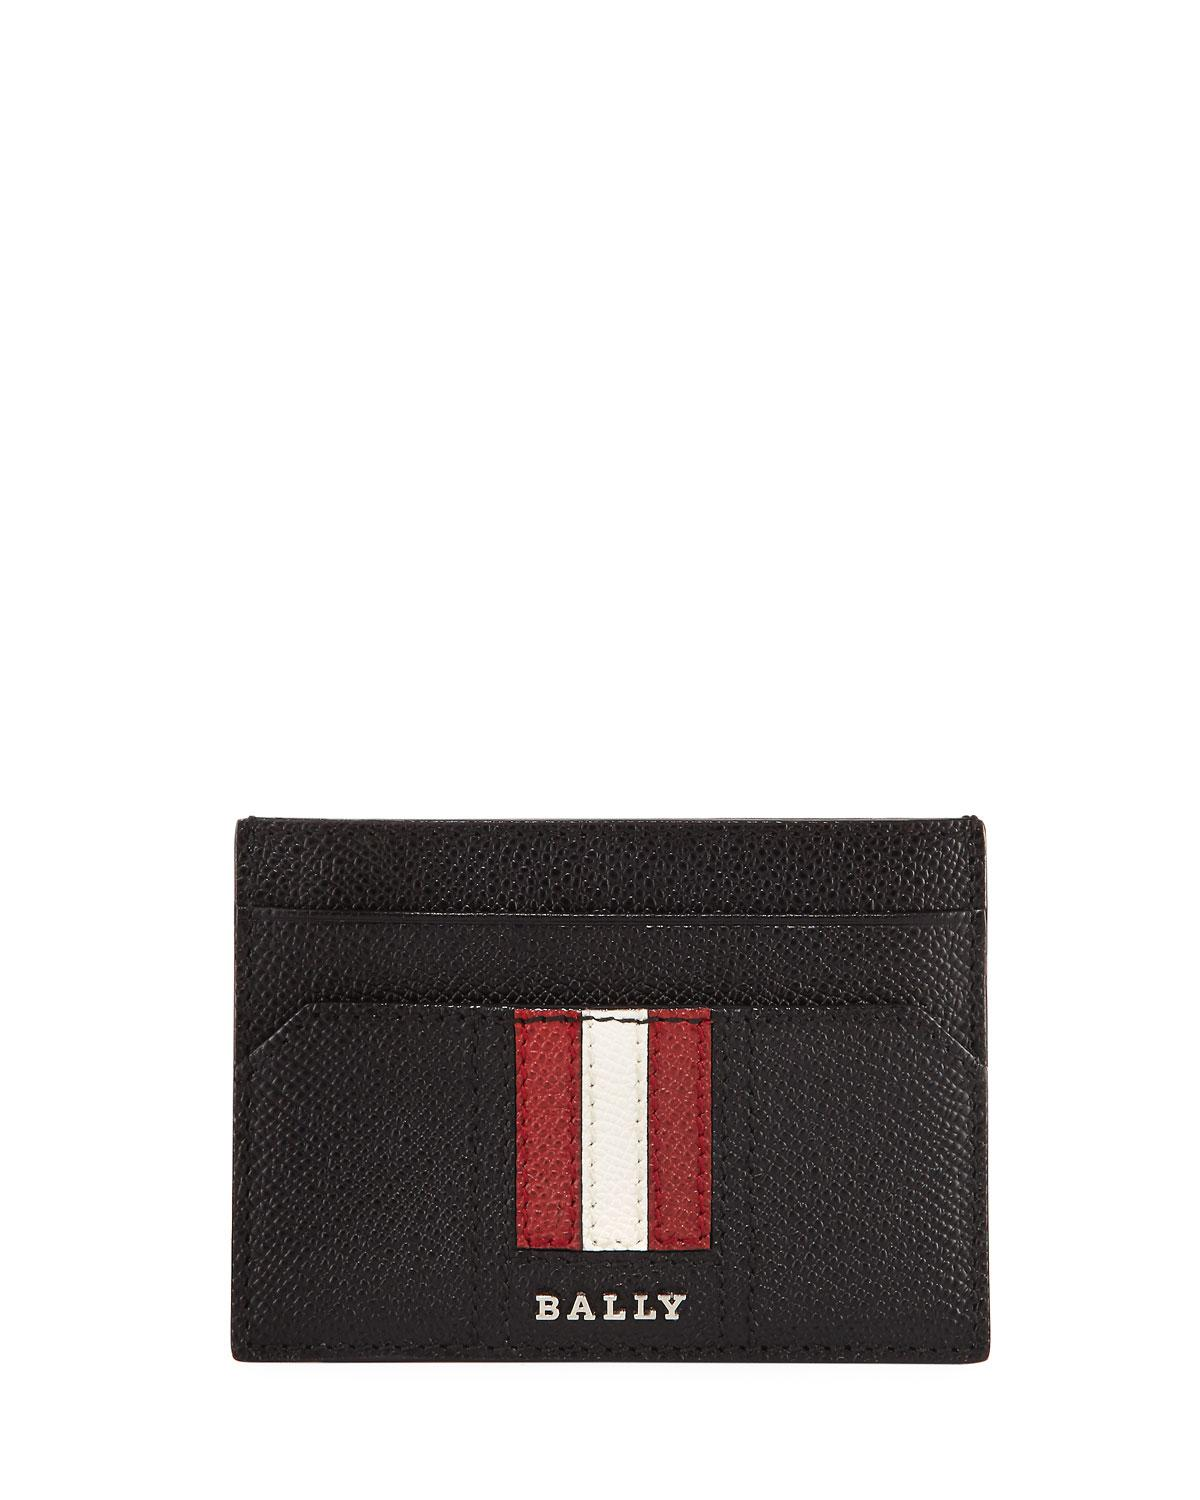 Lyst - Bally Taclipo Leather Business Card Holder in Black for Men